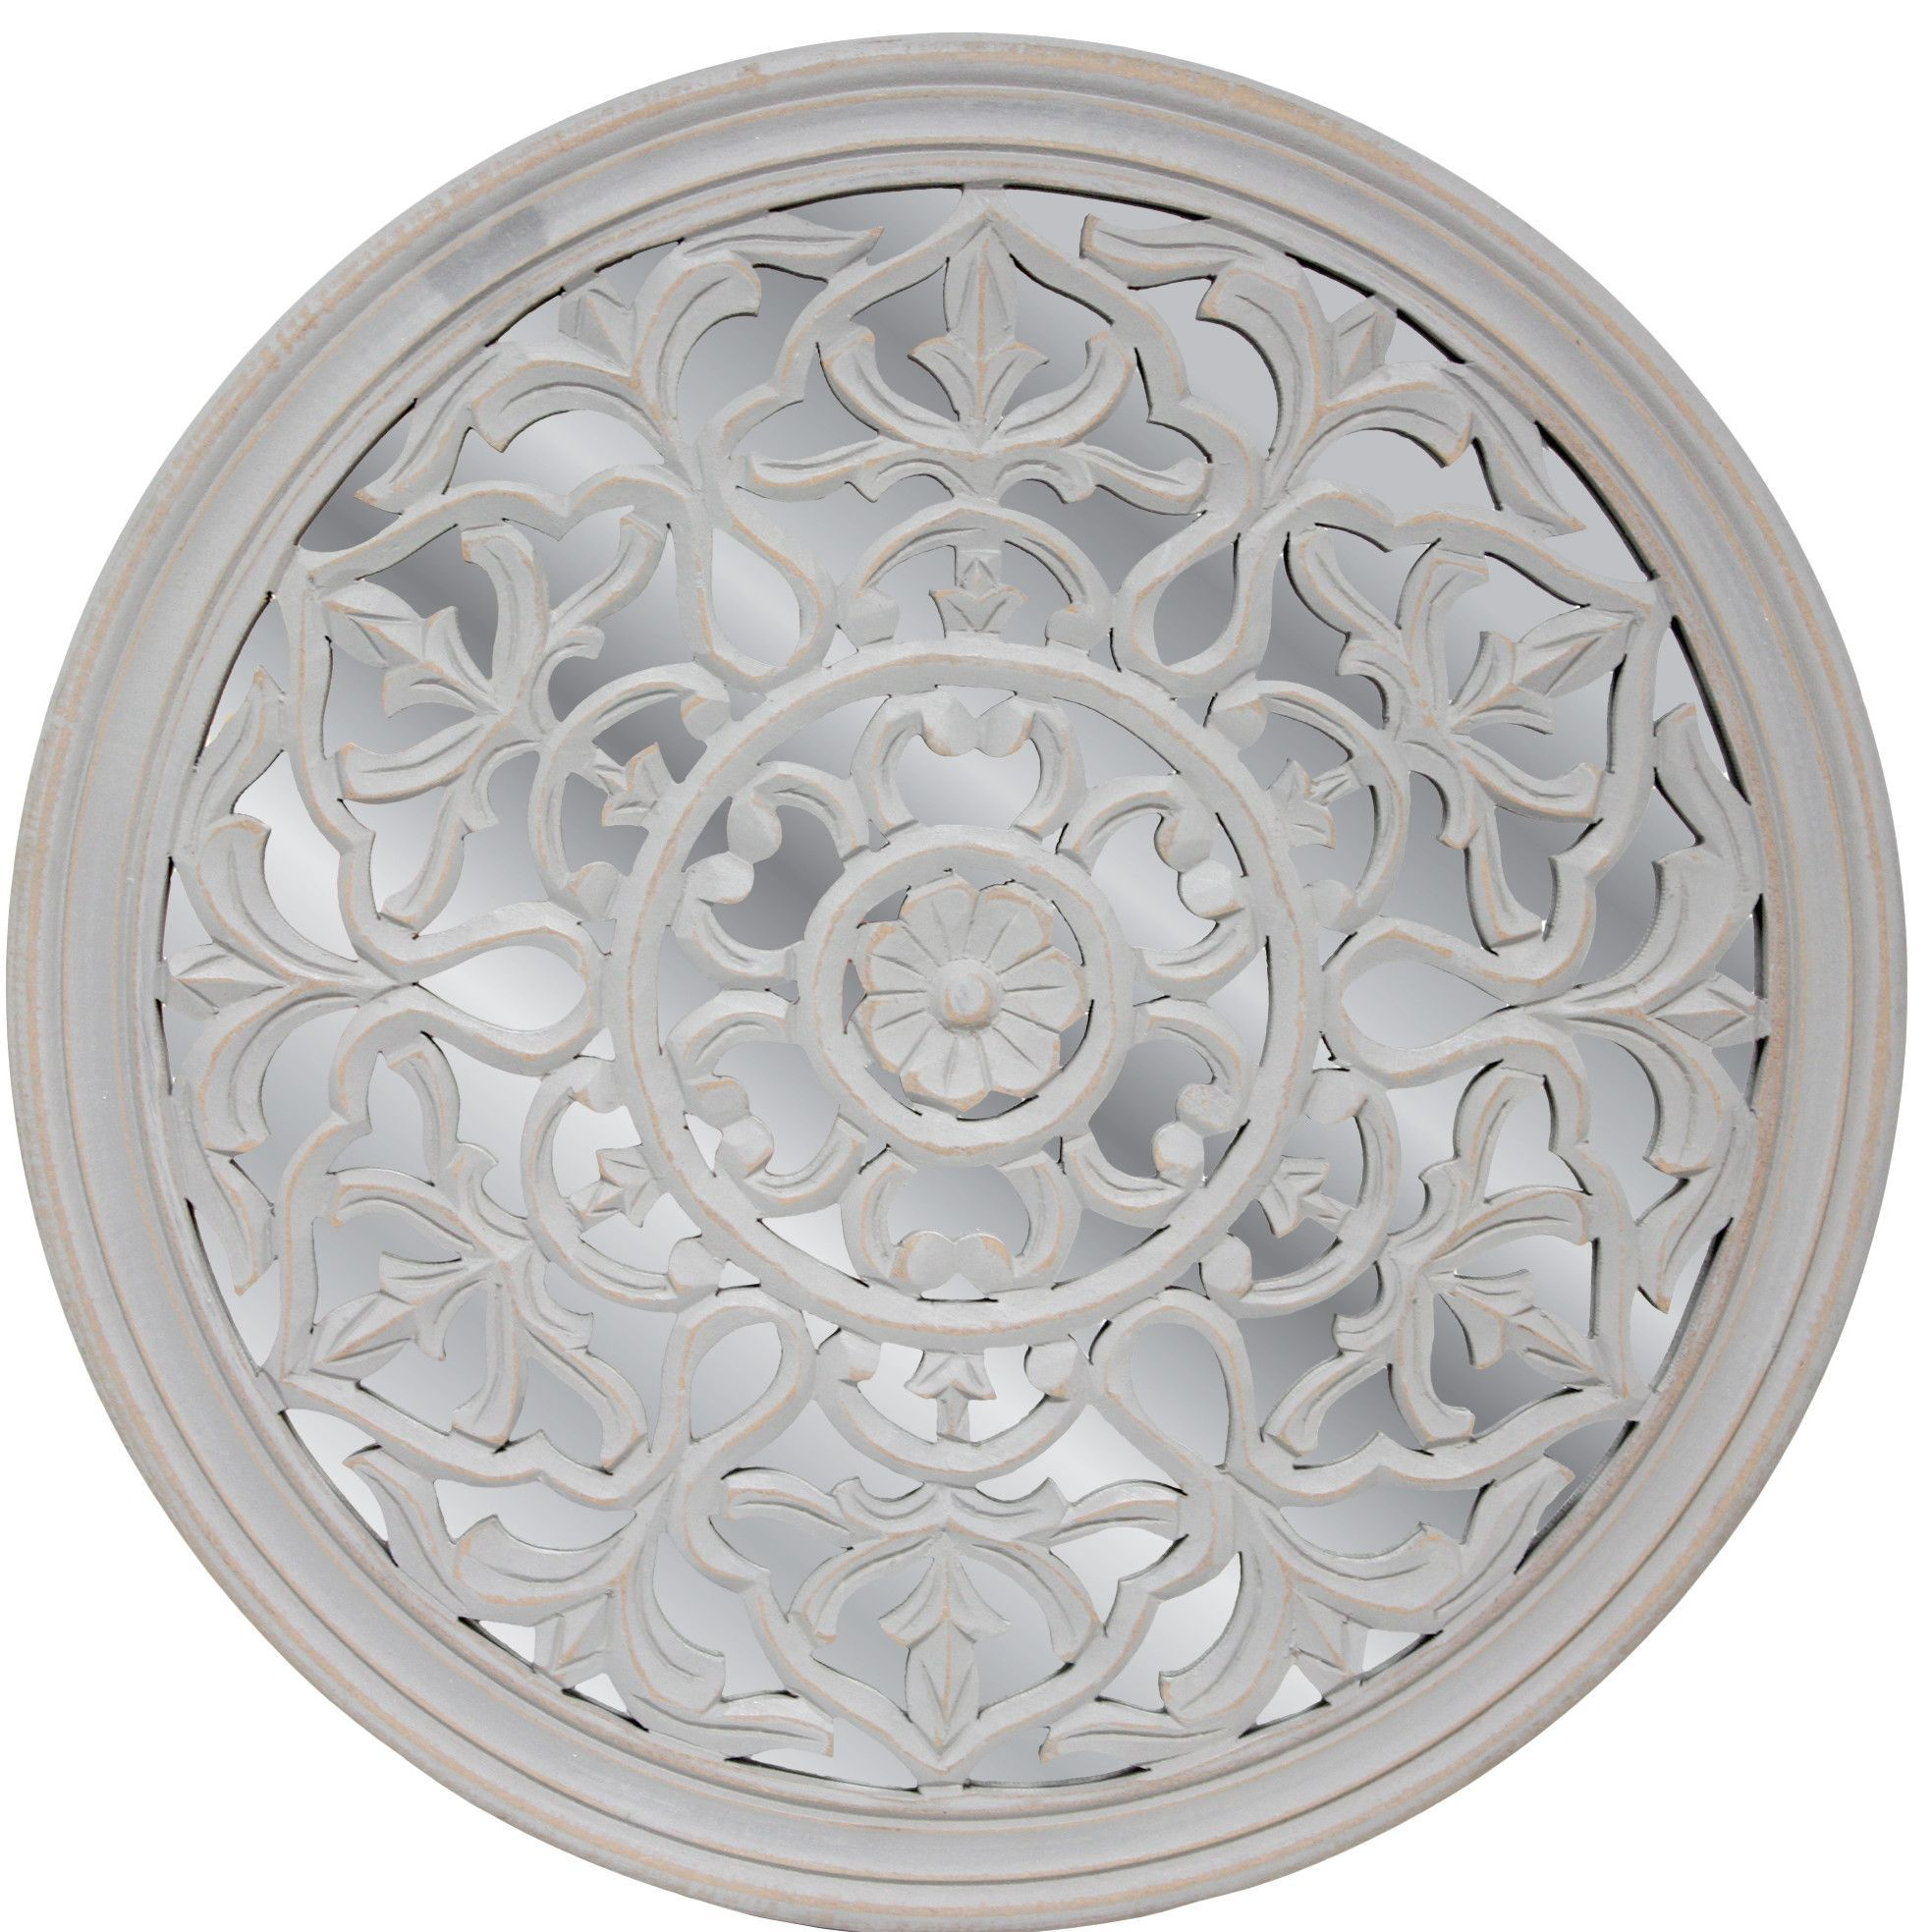 Cyrus Medallion Wall Mirror | Products | Fetco Home Decor In Medallion Accent Mirrors (View 7 of 30)